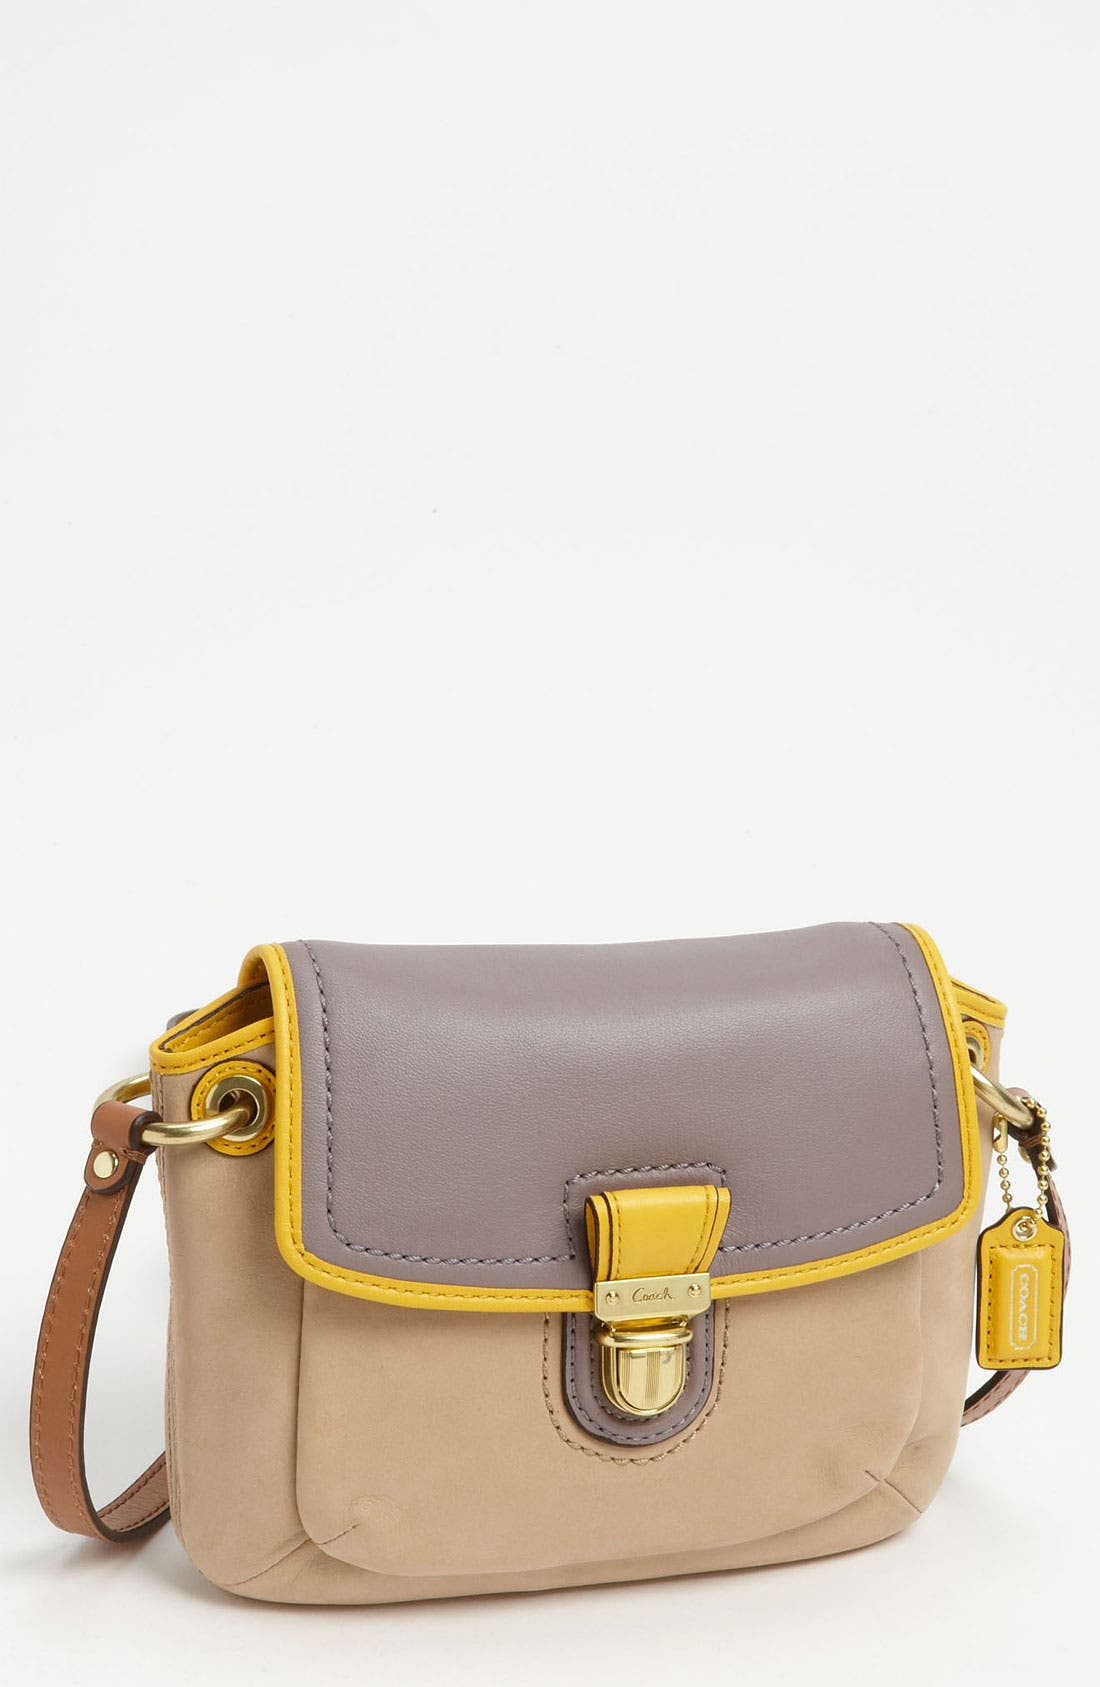 Main Image - COACH 'Poppy - Colorblock' Leather Crossbody Bag